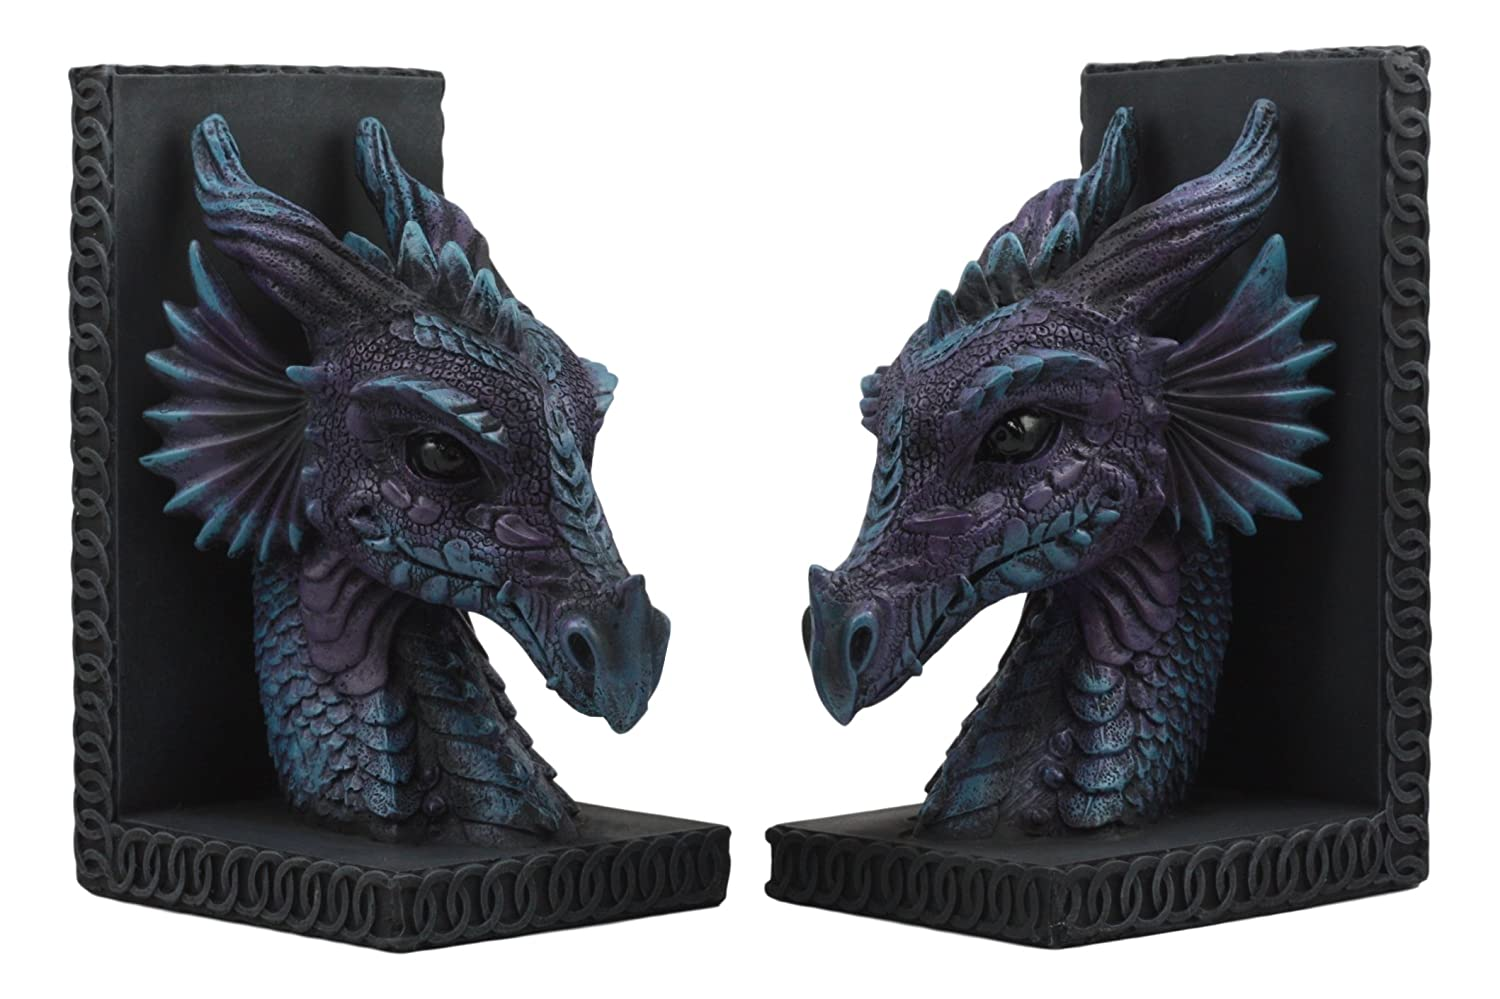 Dragon Book Ends Shopping T Bookends Dragon And Mystic